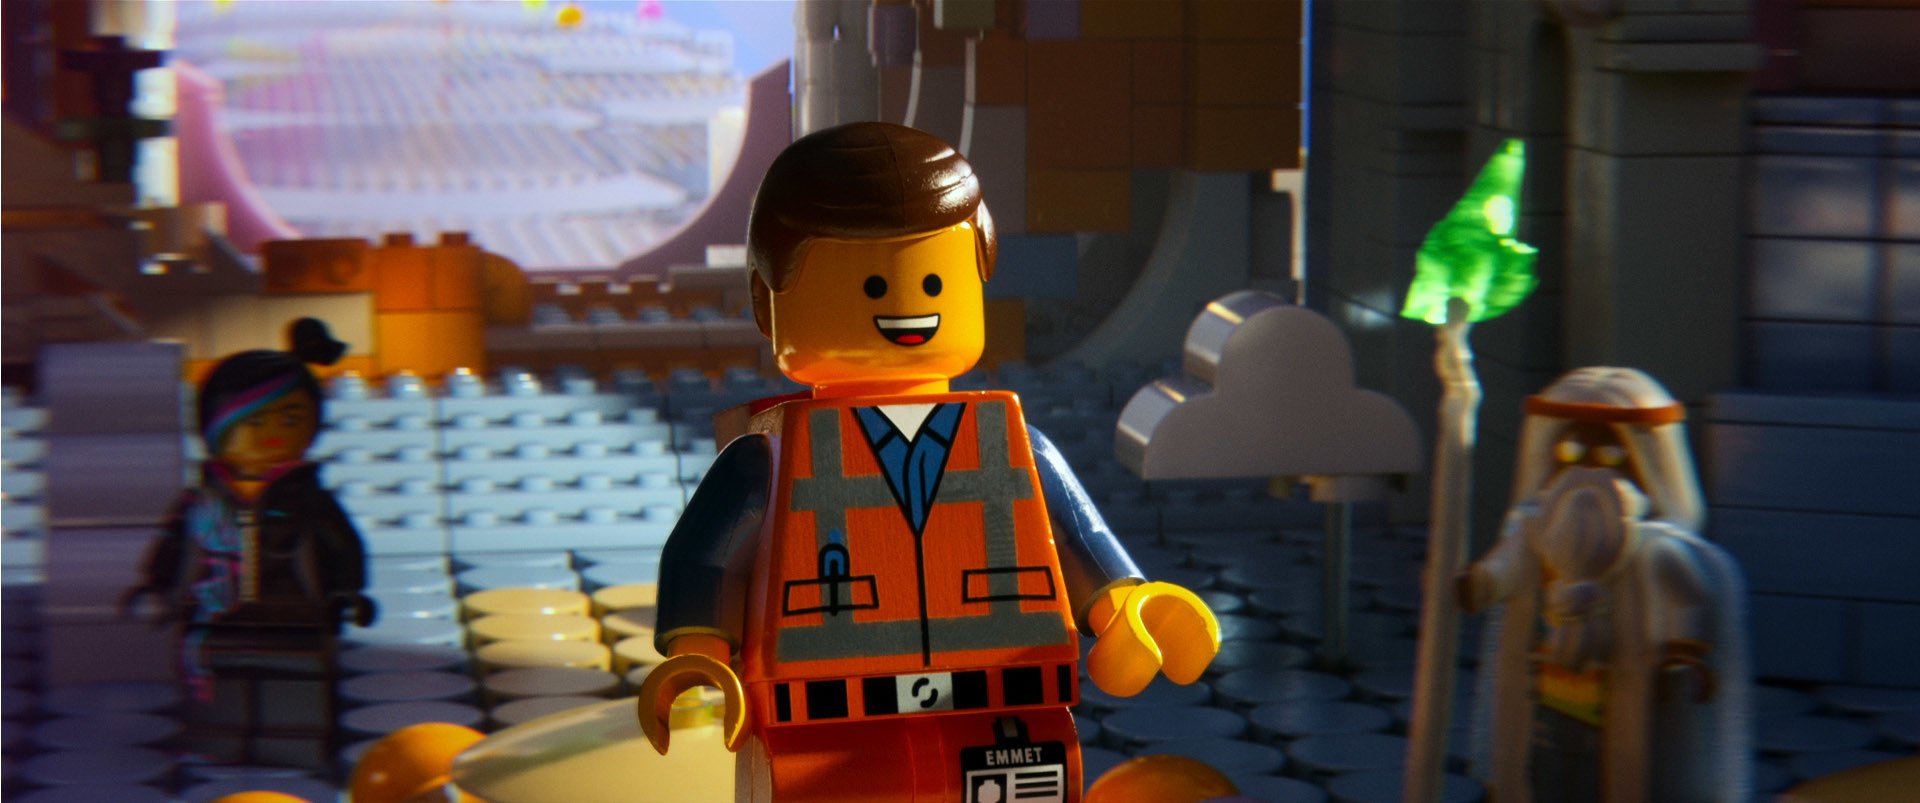 """Wyldstyle, Emmet, and Vitruvius from """"The Lego Movie"""""""